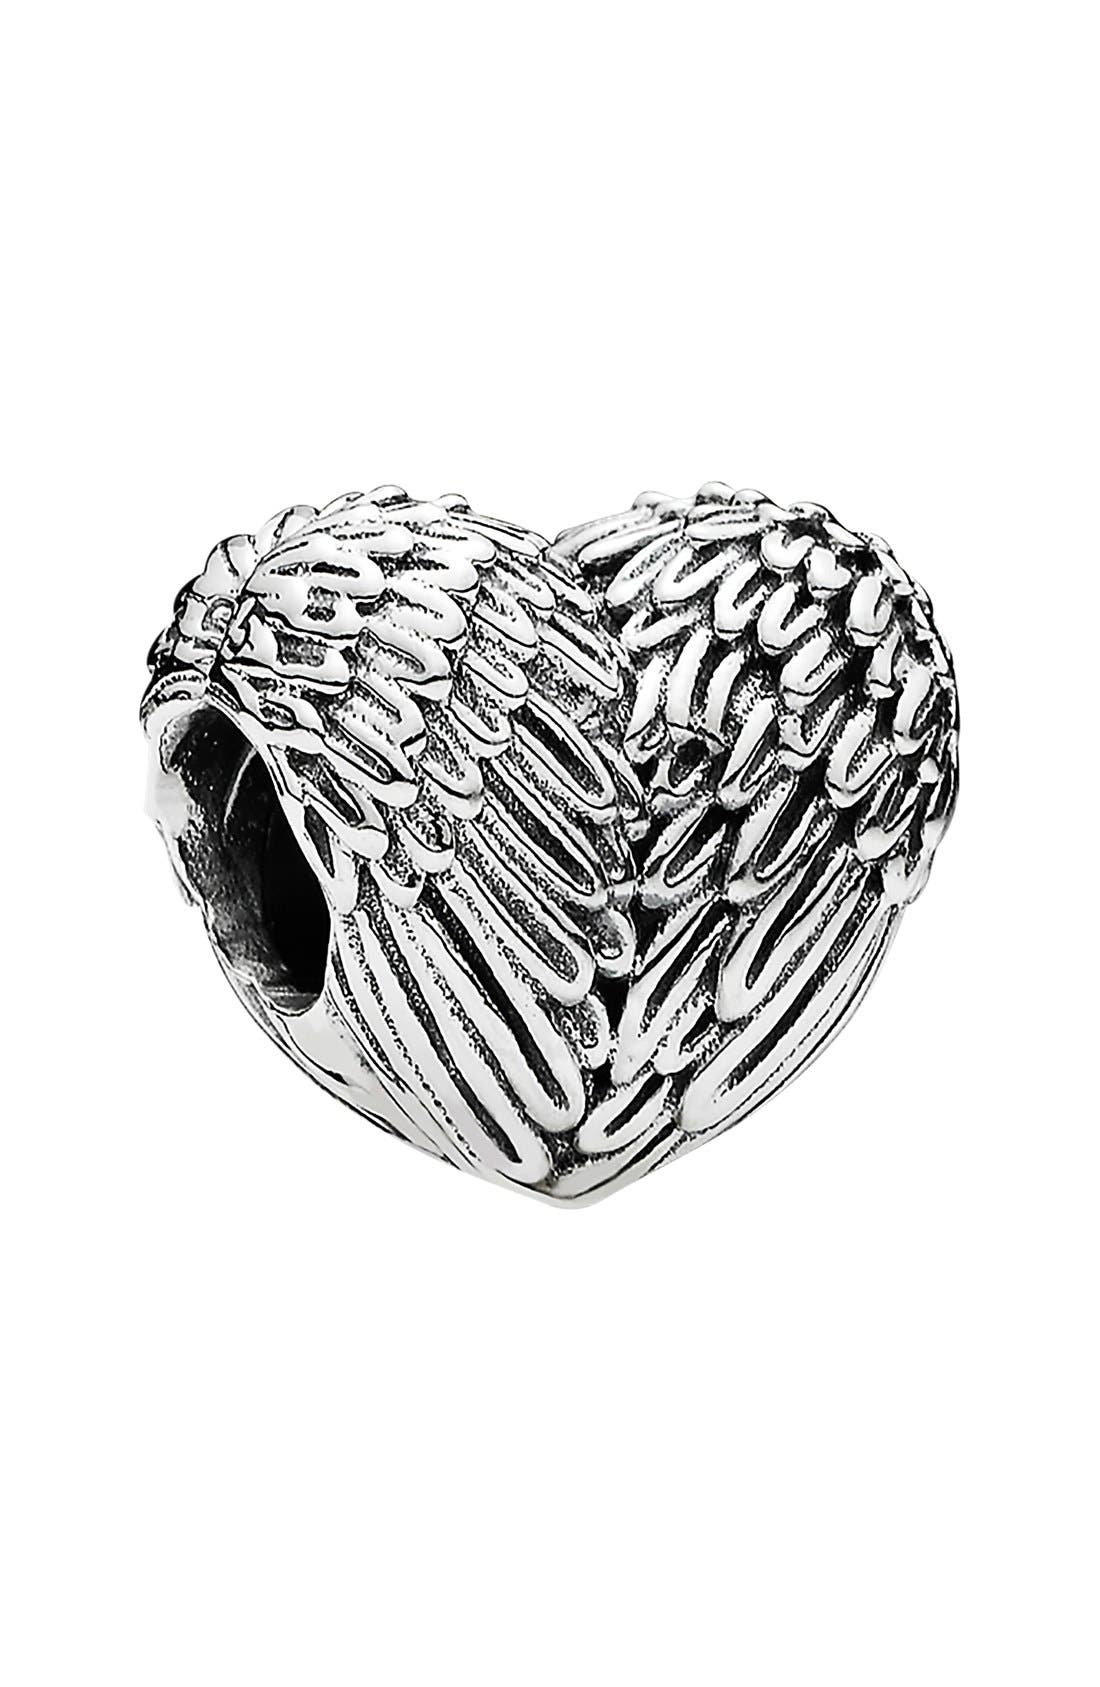 Alternate Image 1 Selected - PANDORA 'Angelic Feathers' Charm